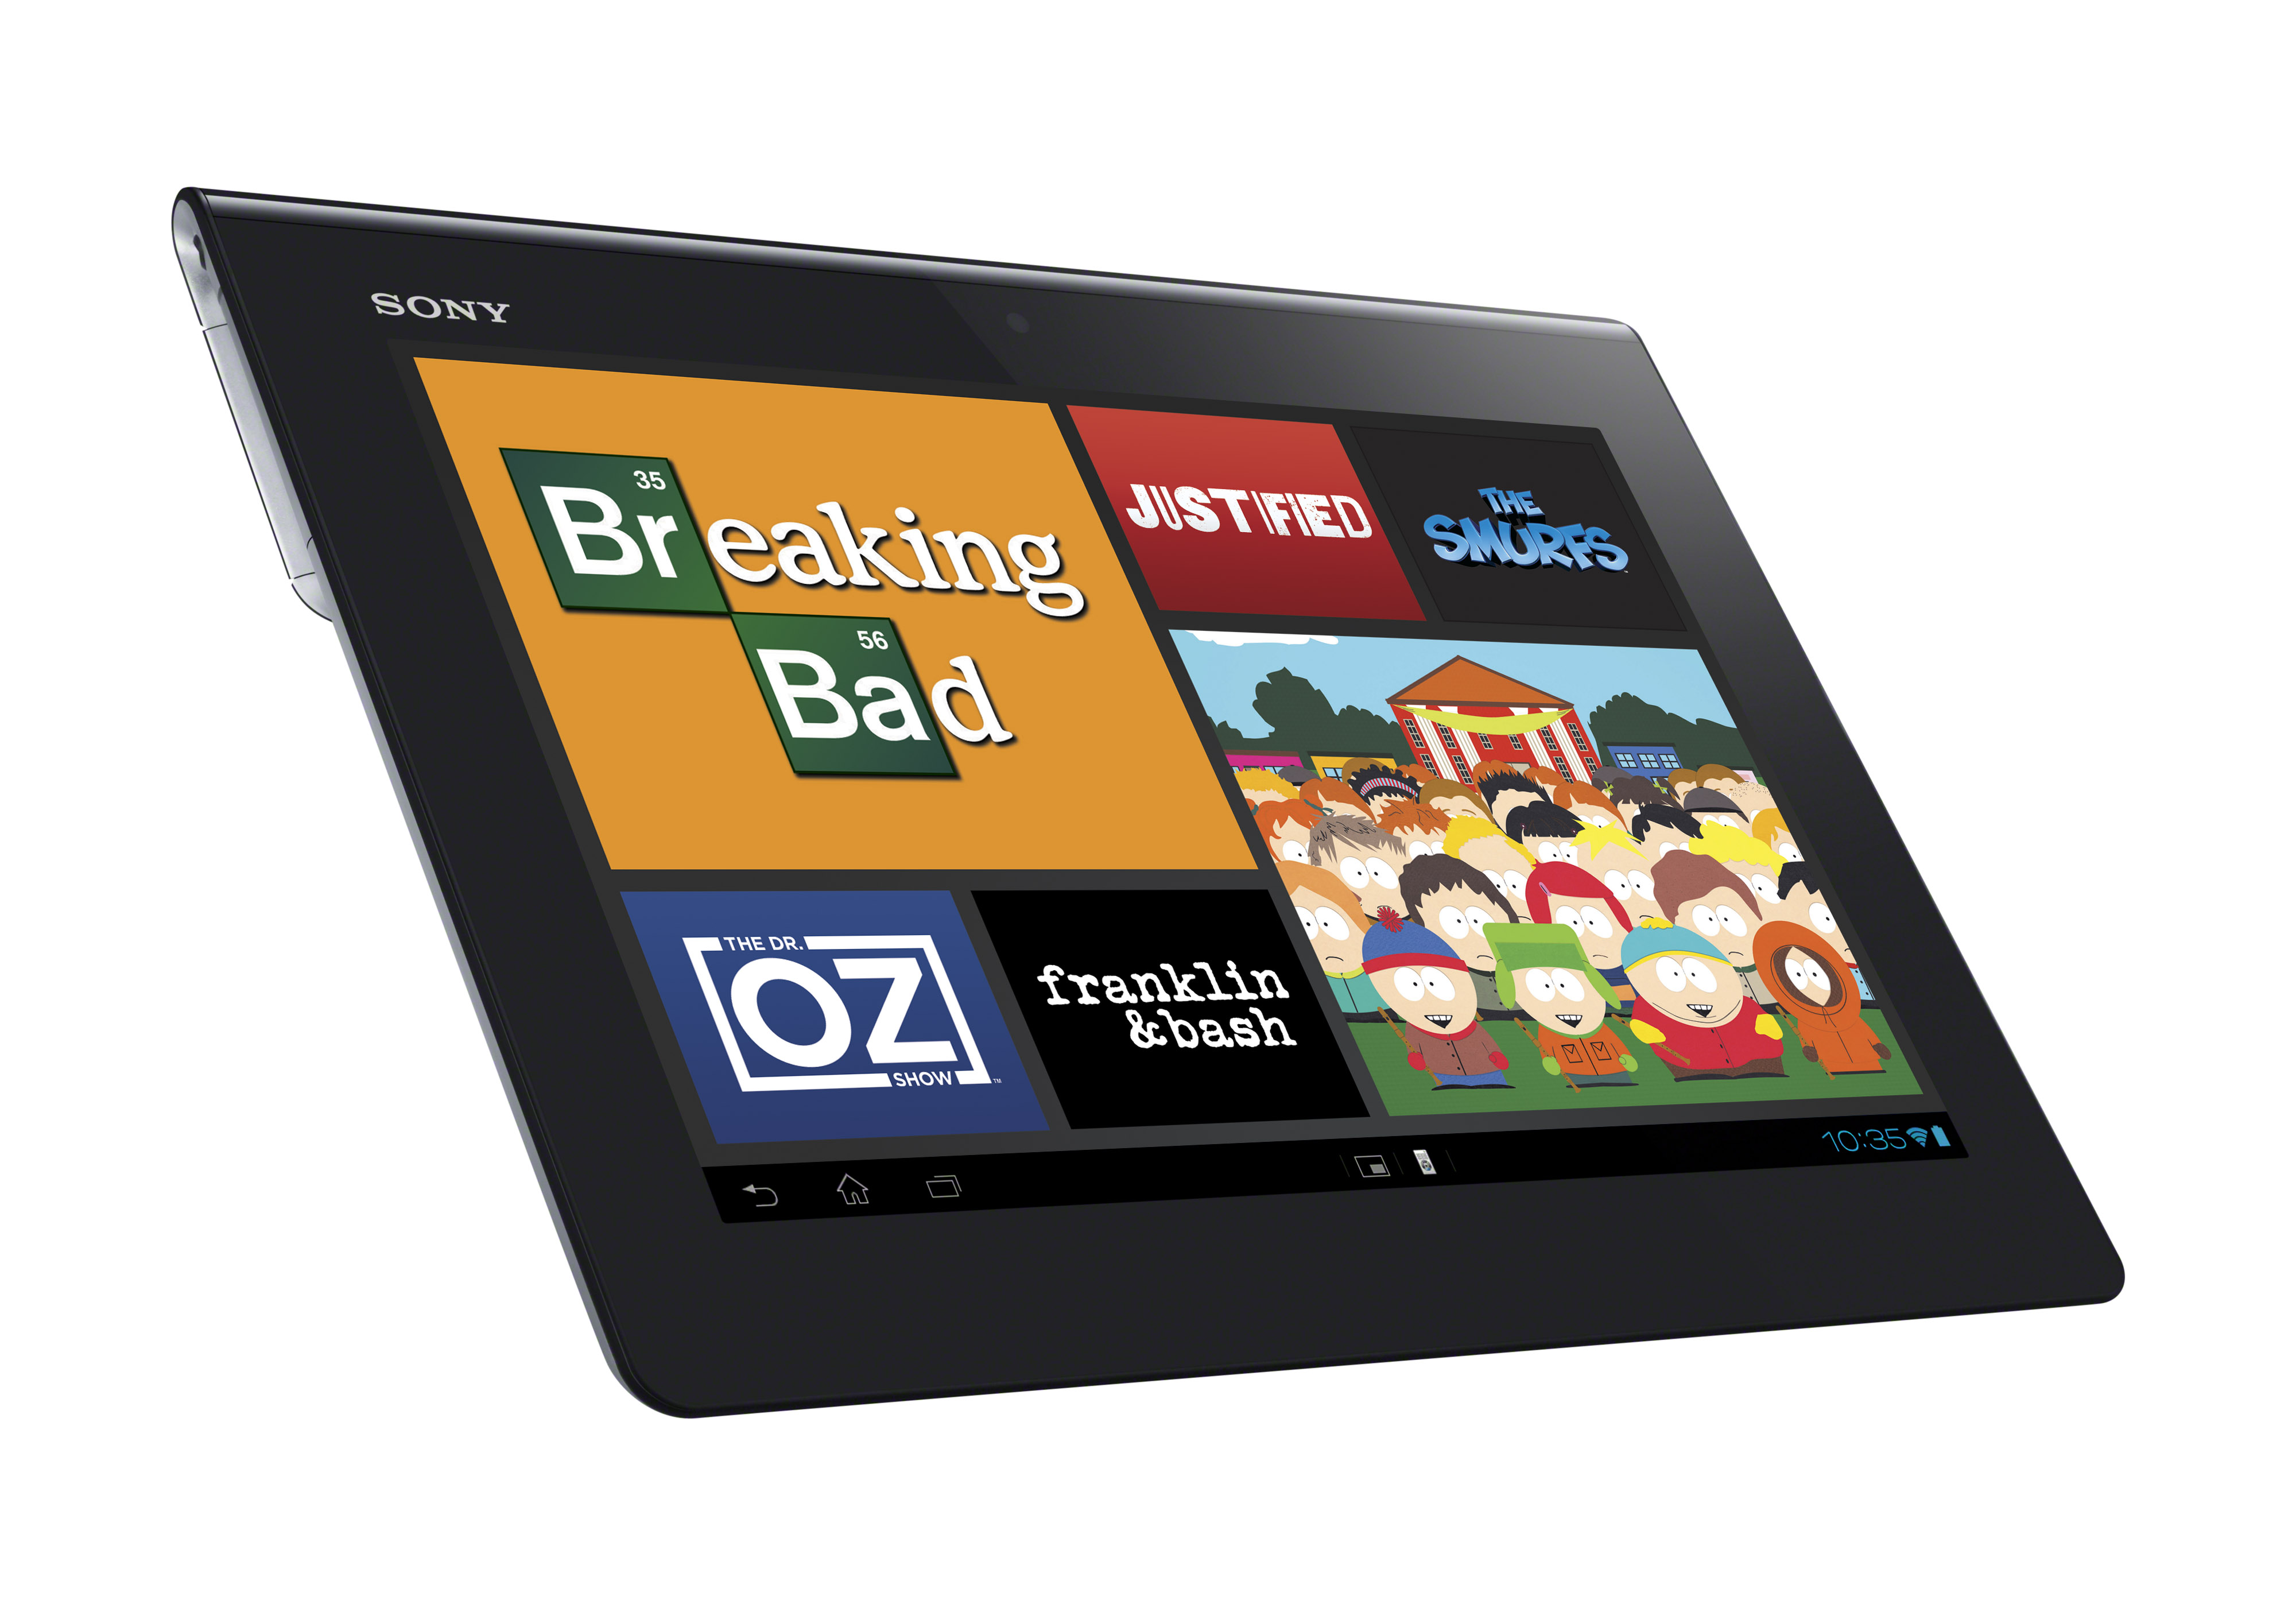 Xperia_Tablet_S_02_front_right_WatchNowScreen